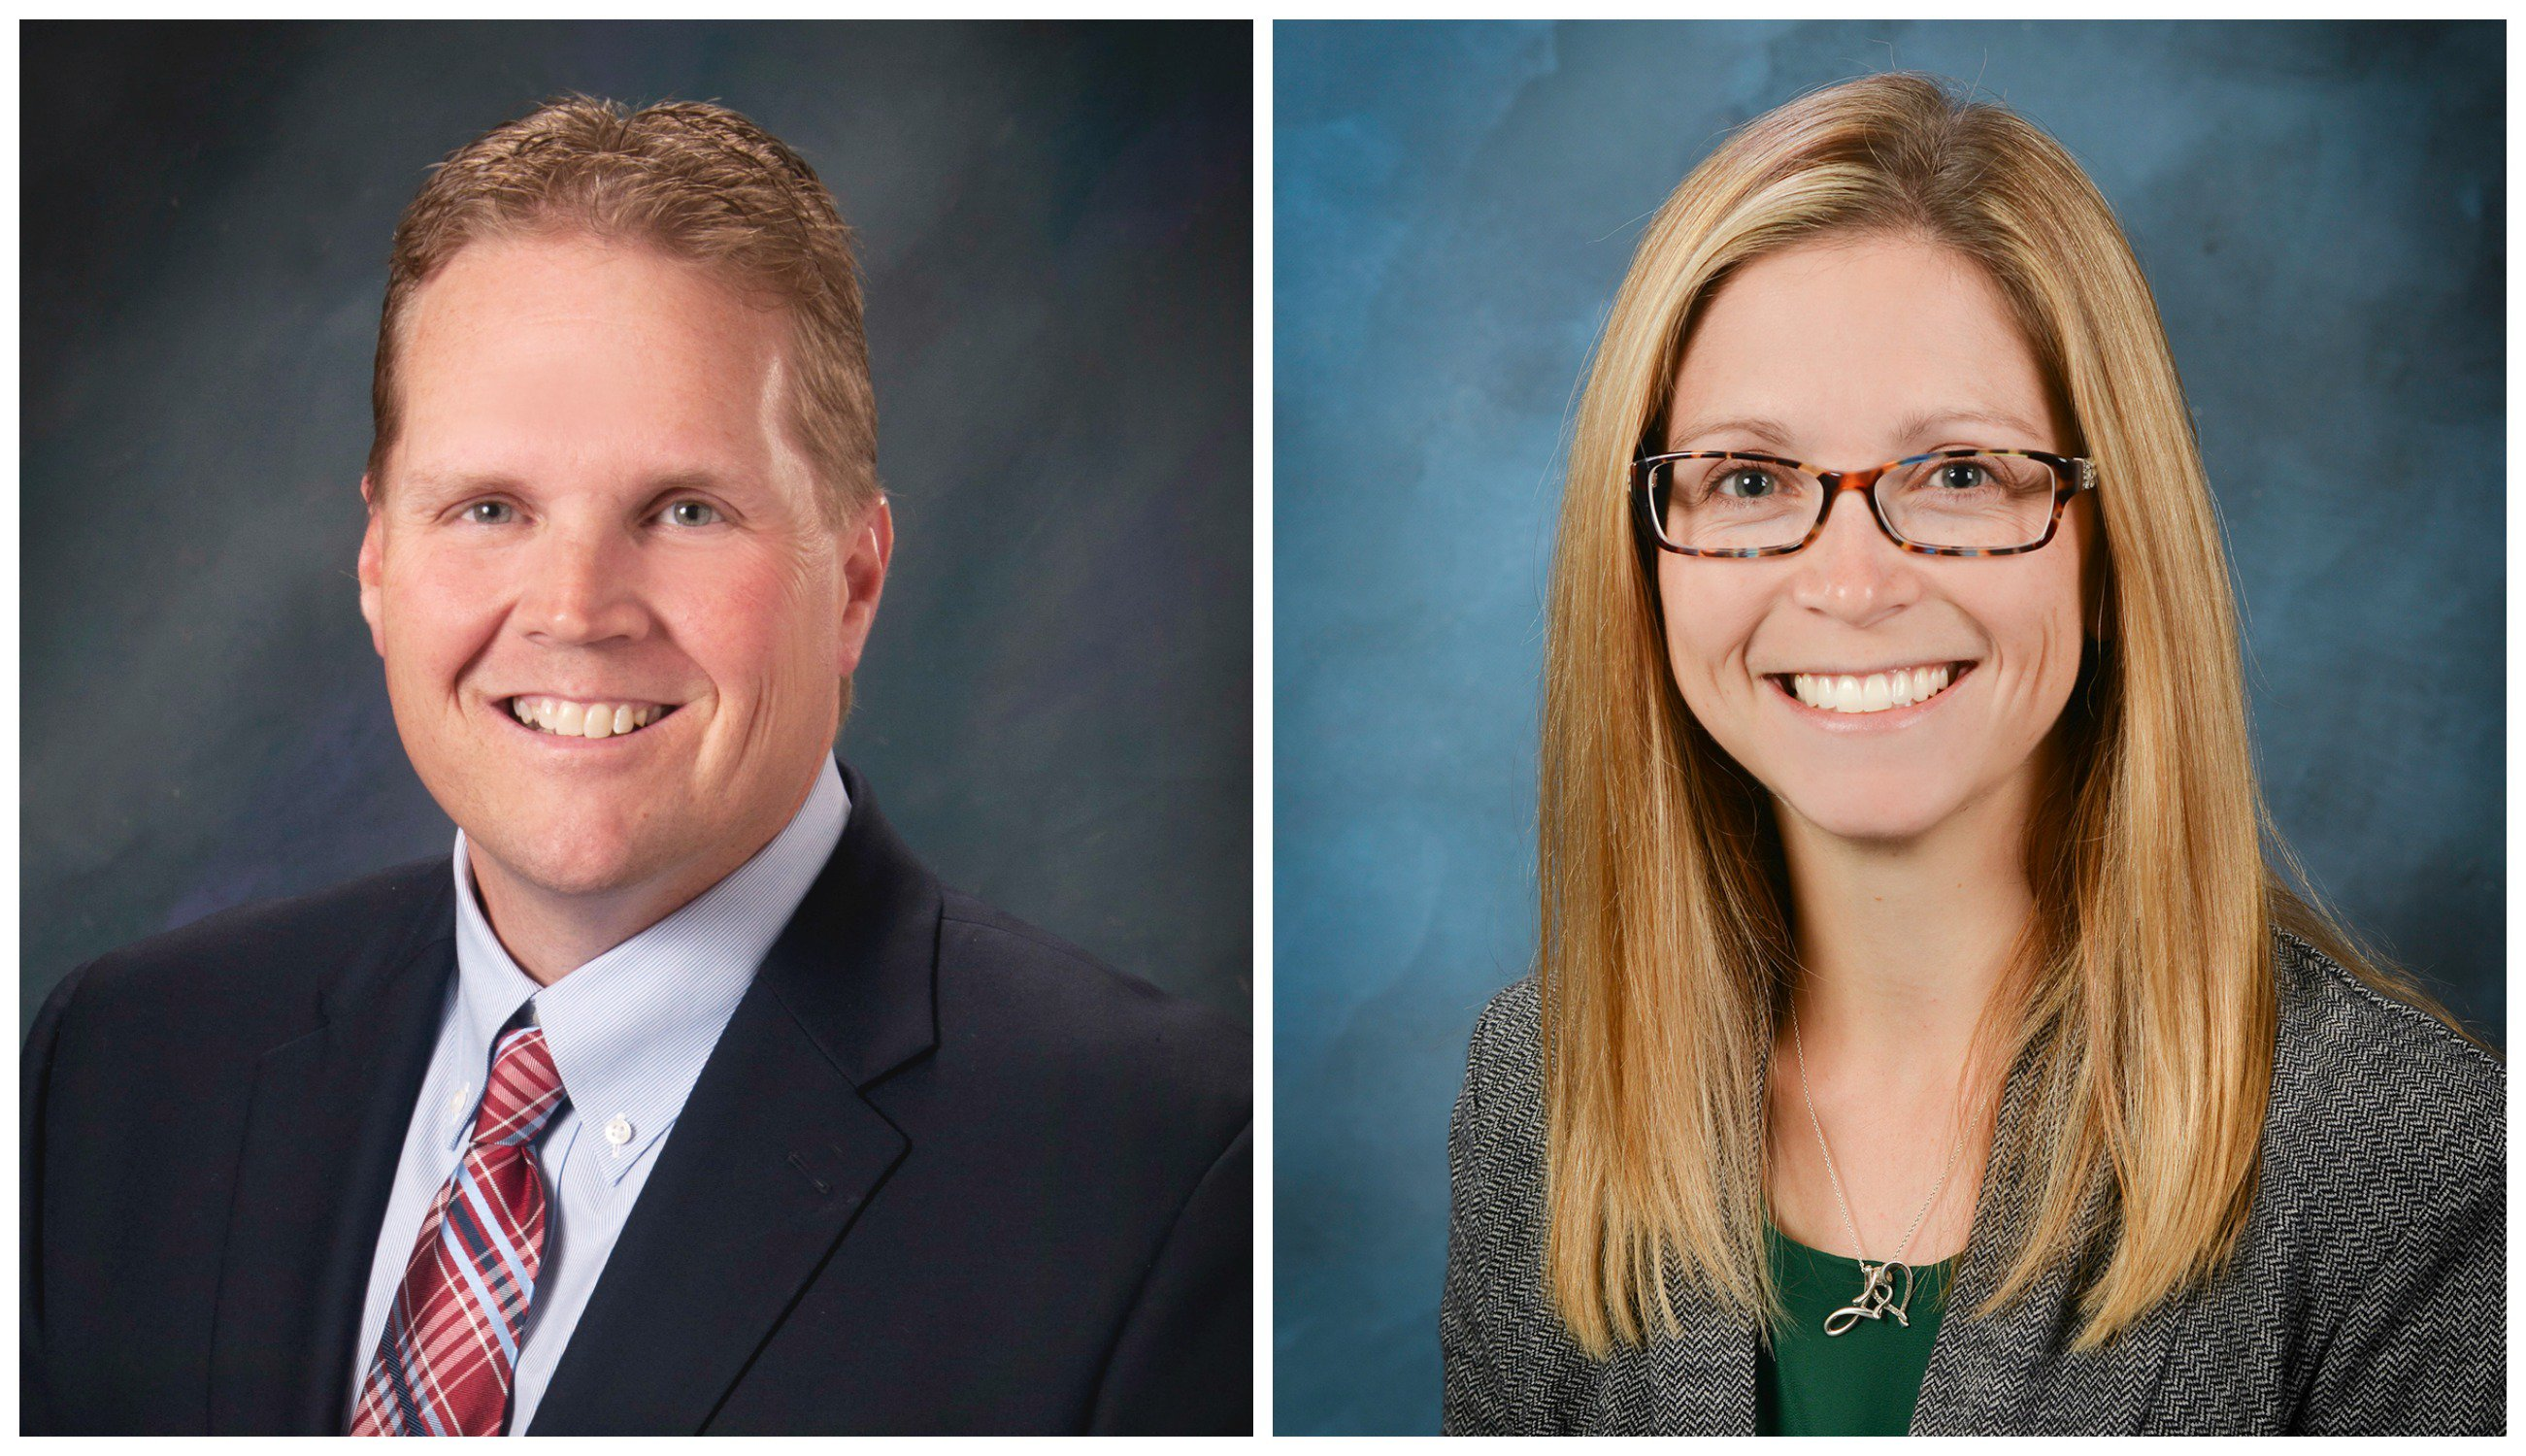 Head shots show Dr. Jones and Dr. Niemoth.